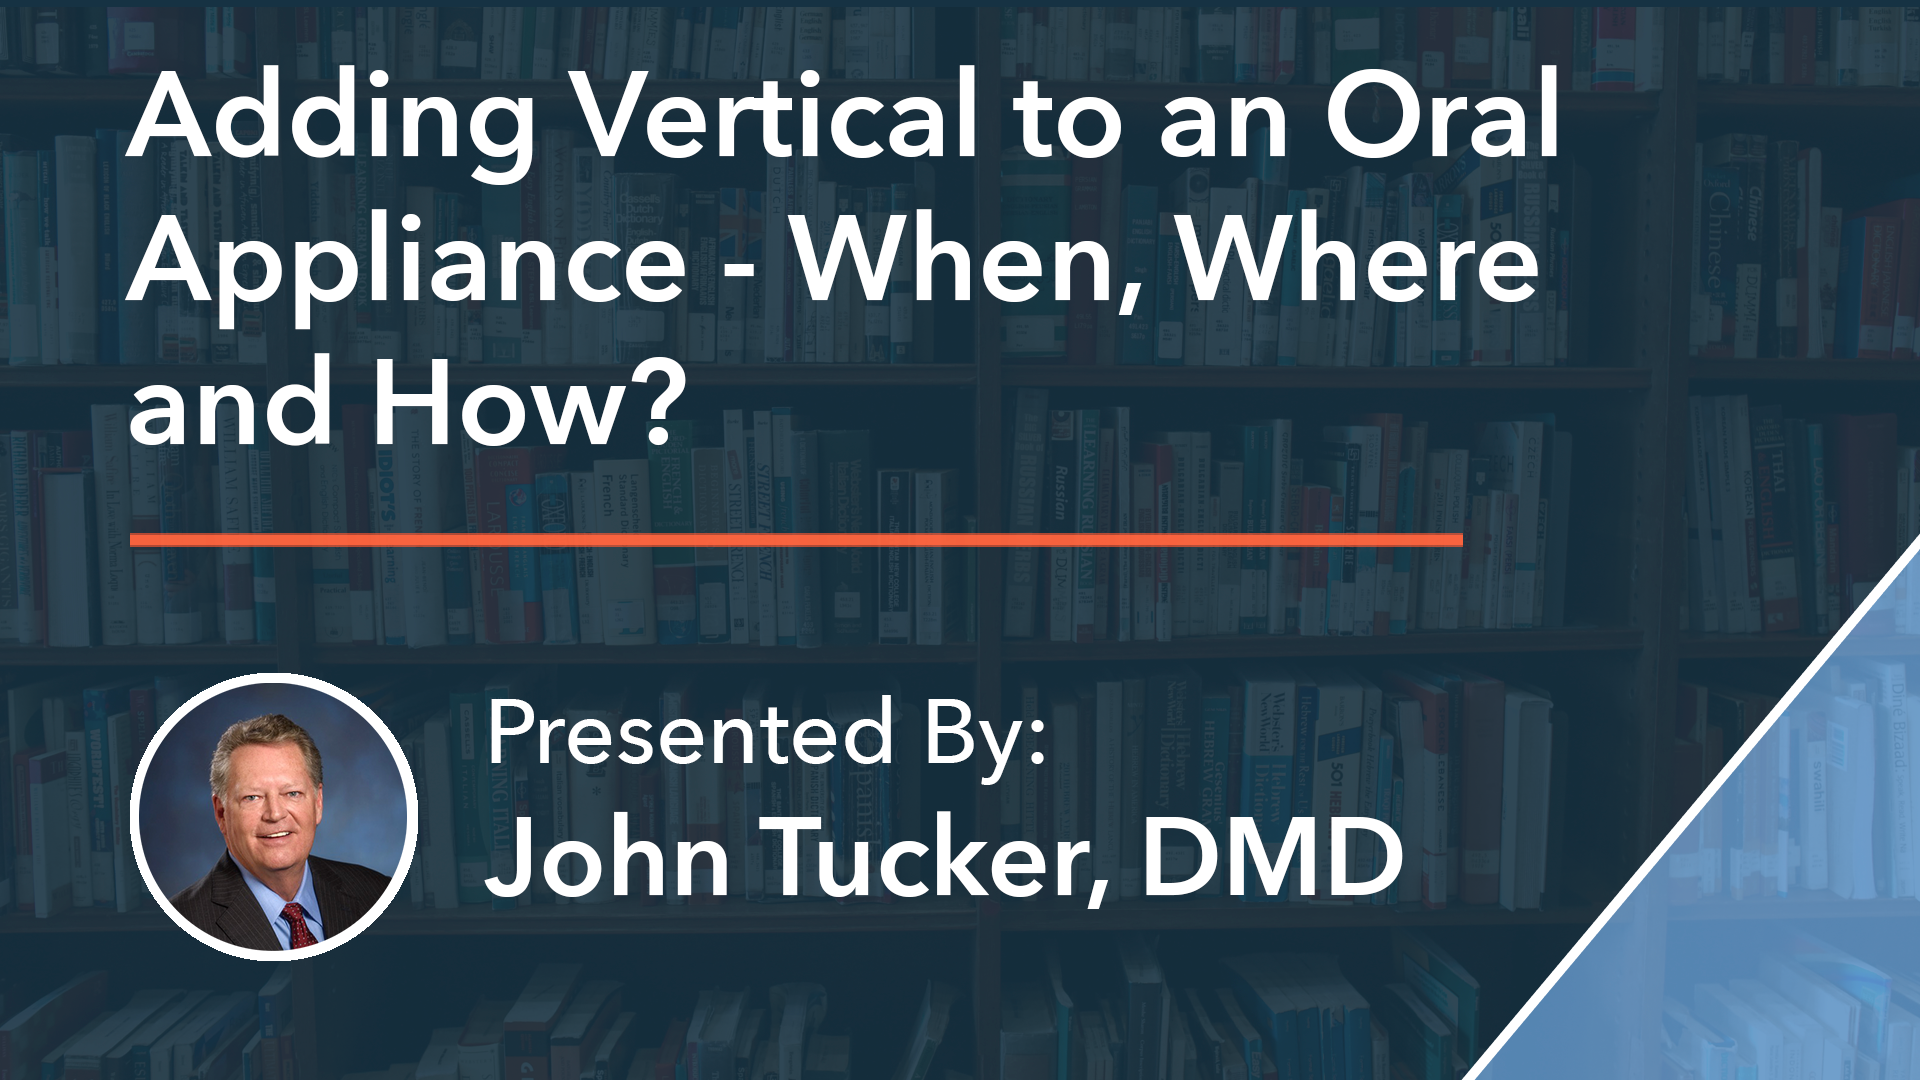 Adding Vertical to an Oral Appliance - When, Where and How Dr John Tucker